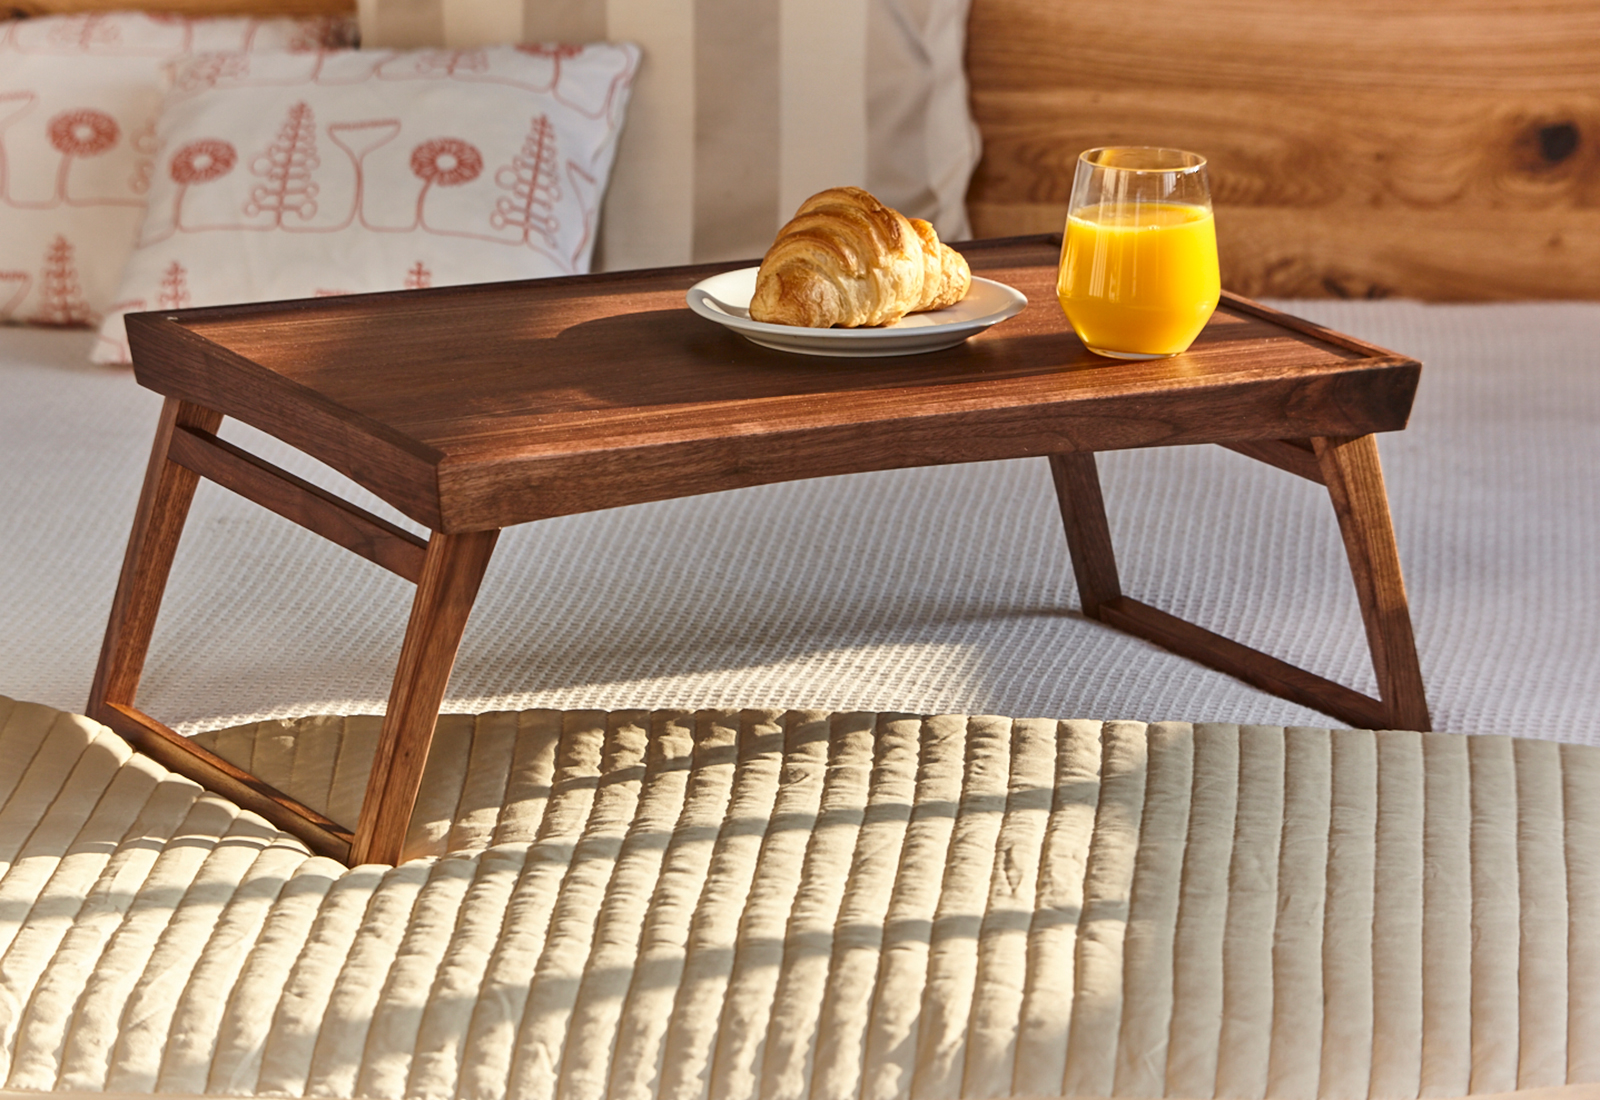 DÉSIRÉE bed tray table